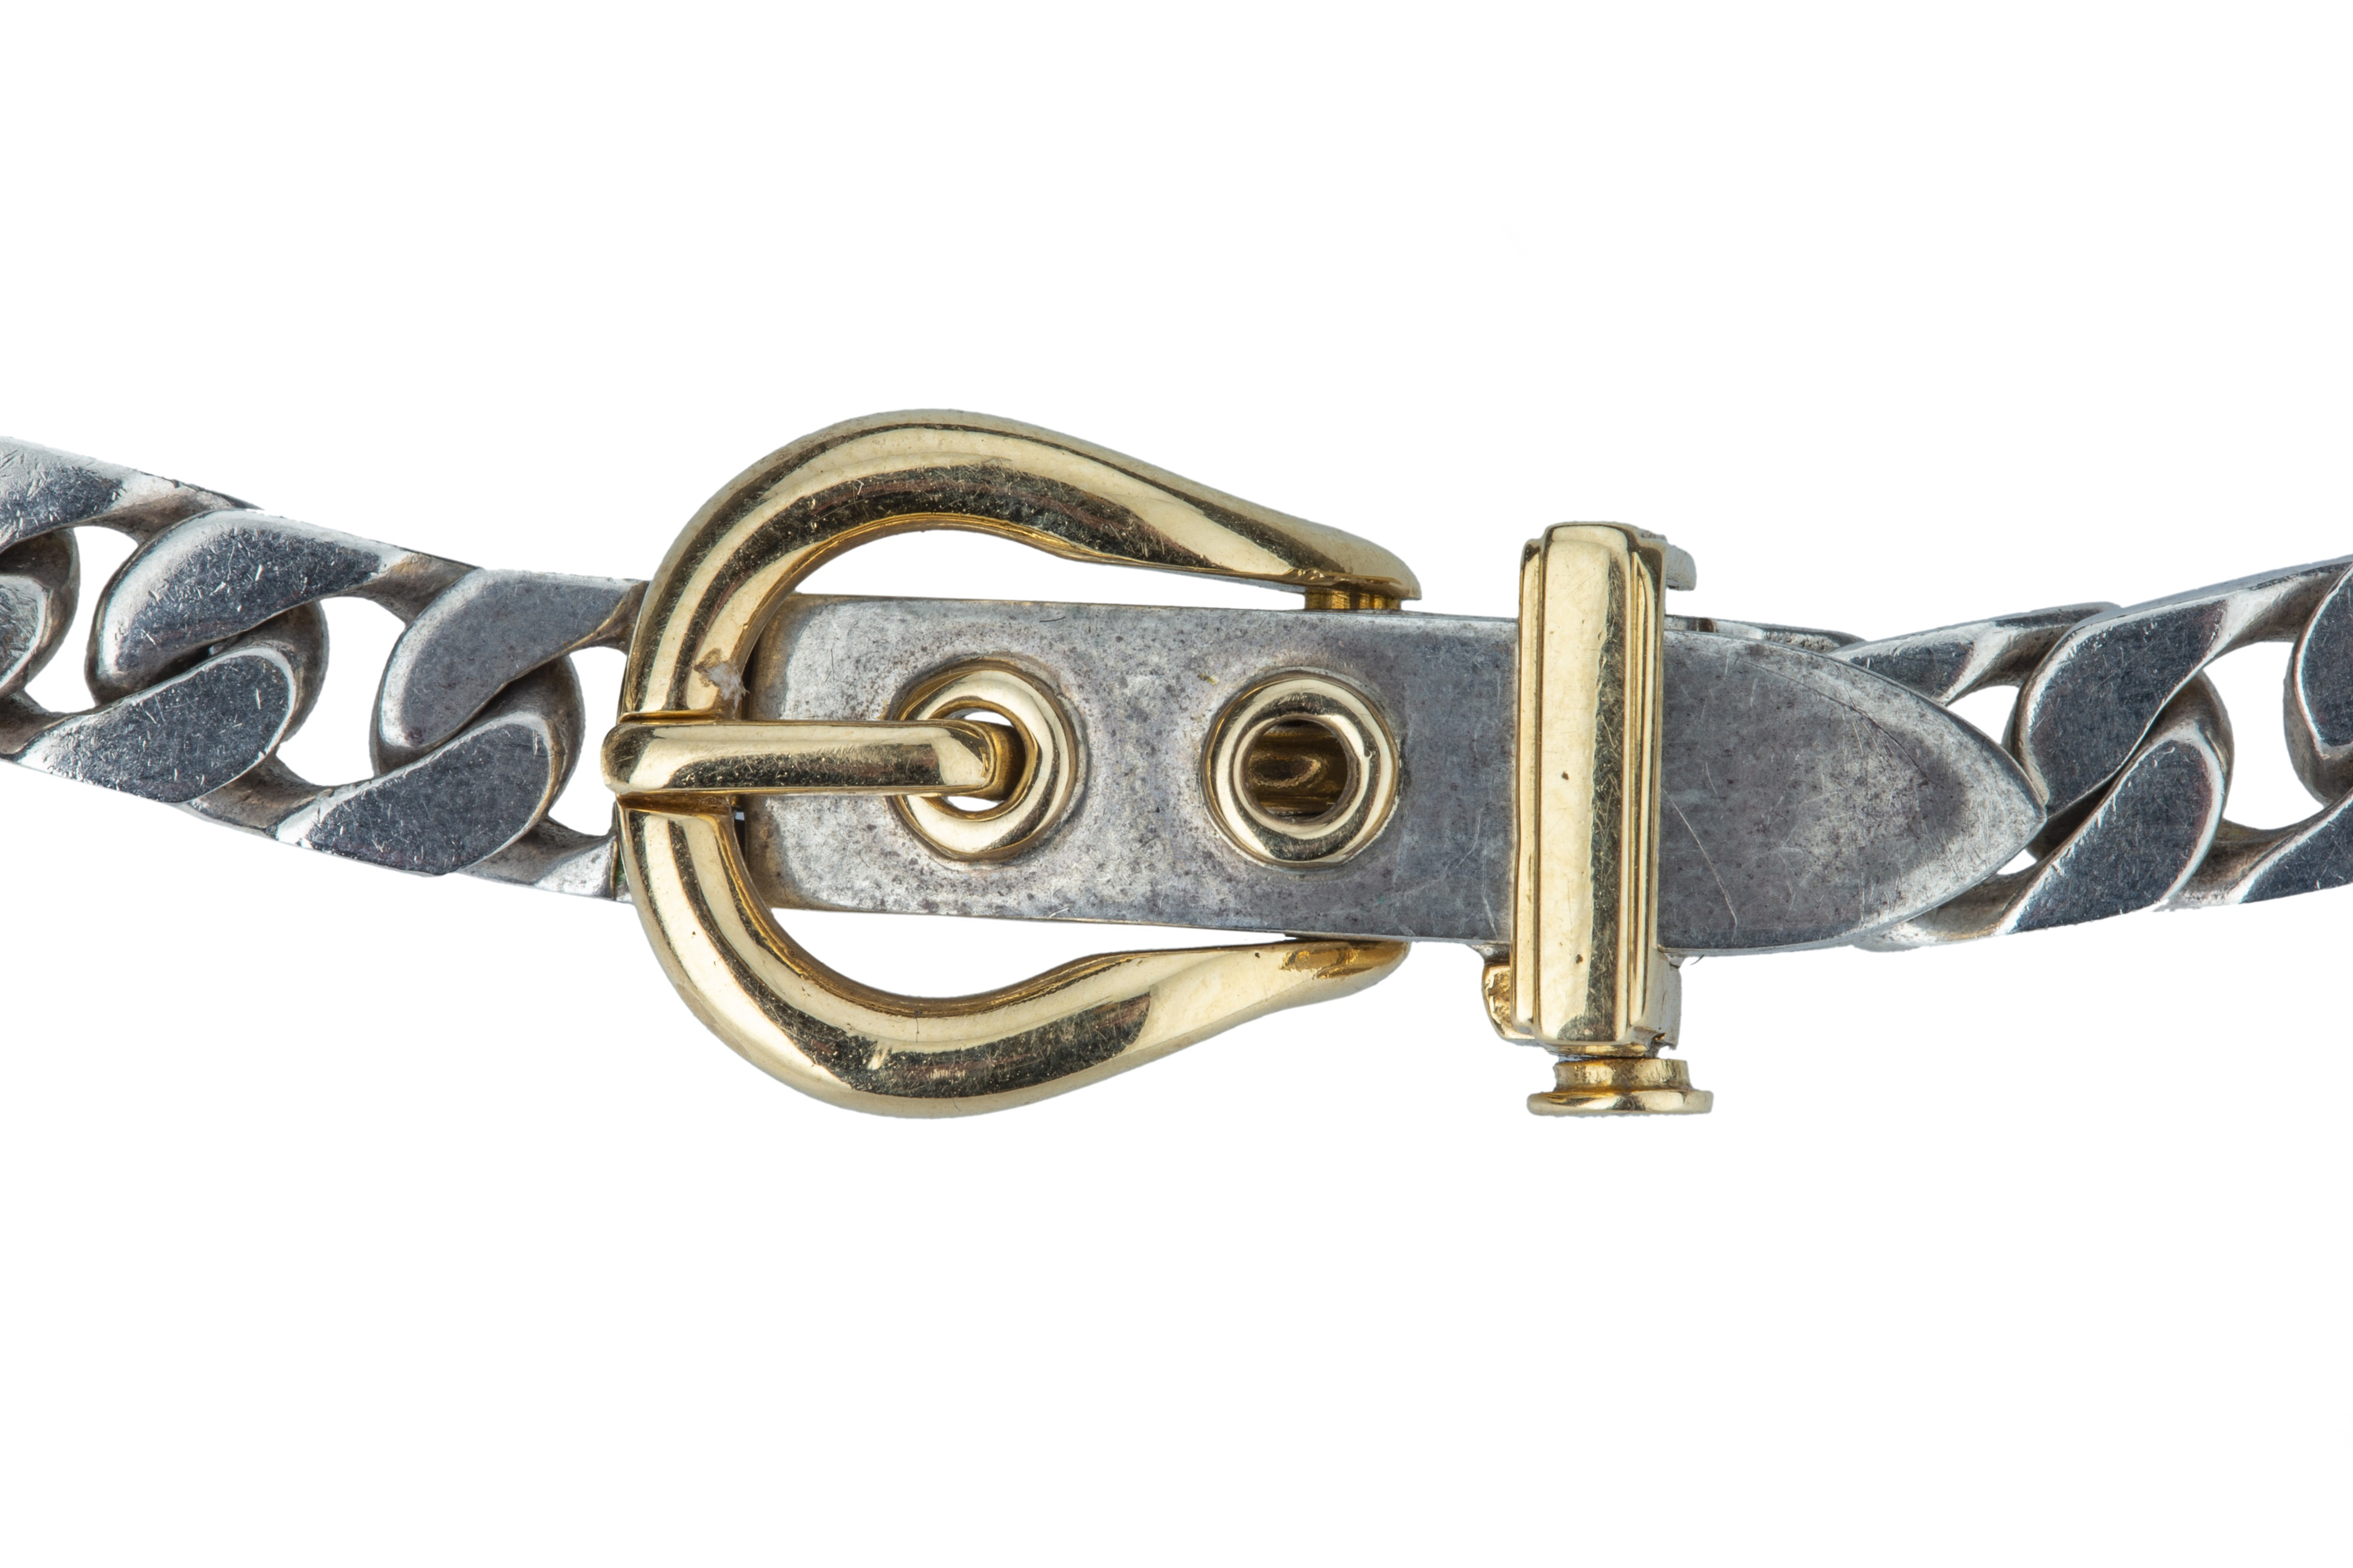 HERMES. An edgy silver collar with 18 ct gold yellow buckle. - Image 2 of 4